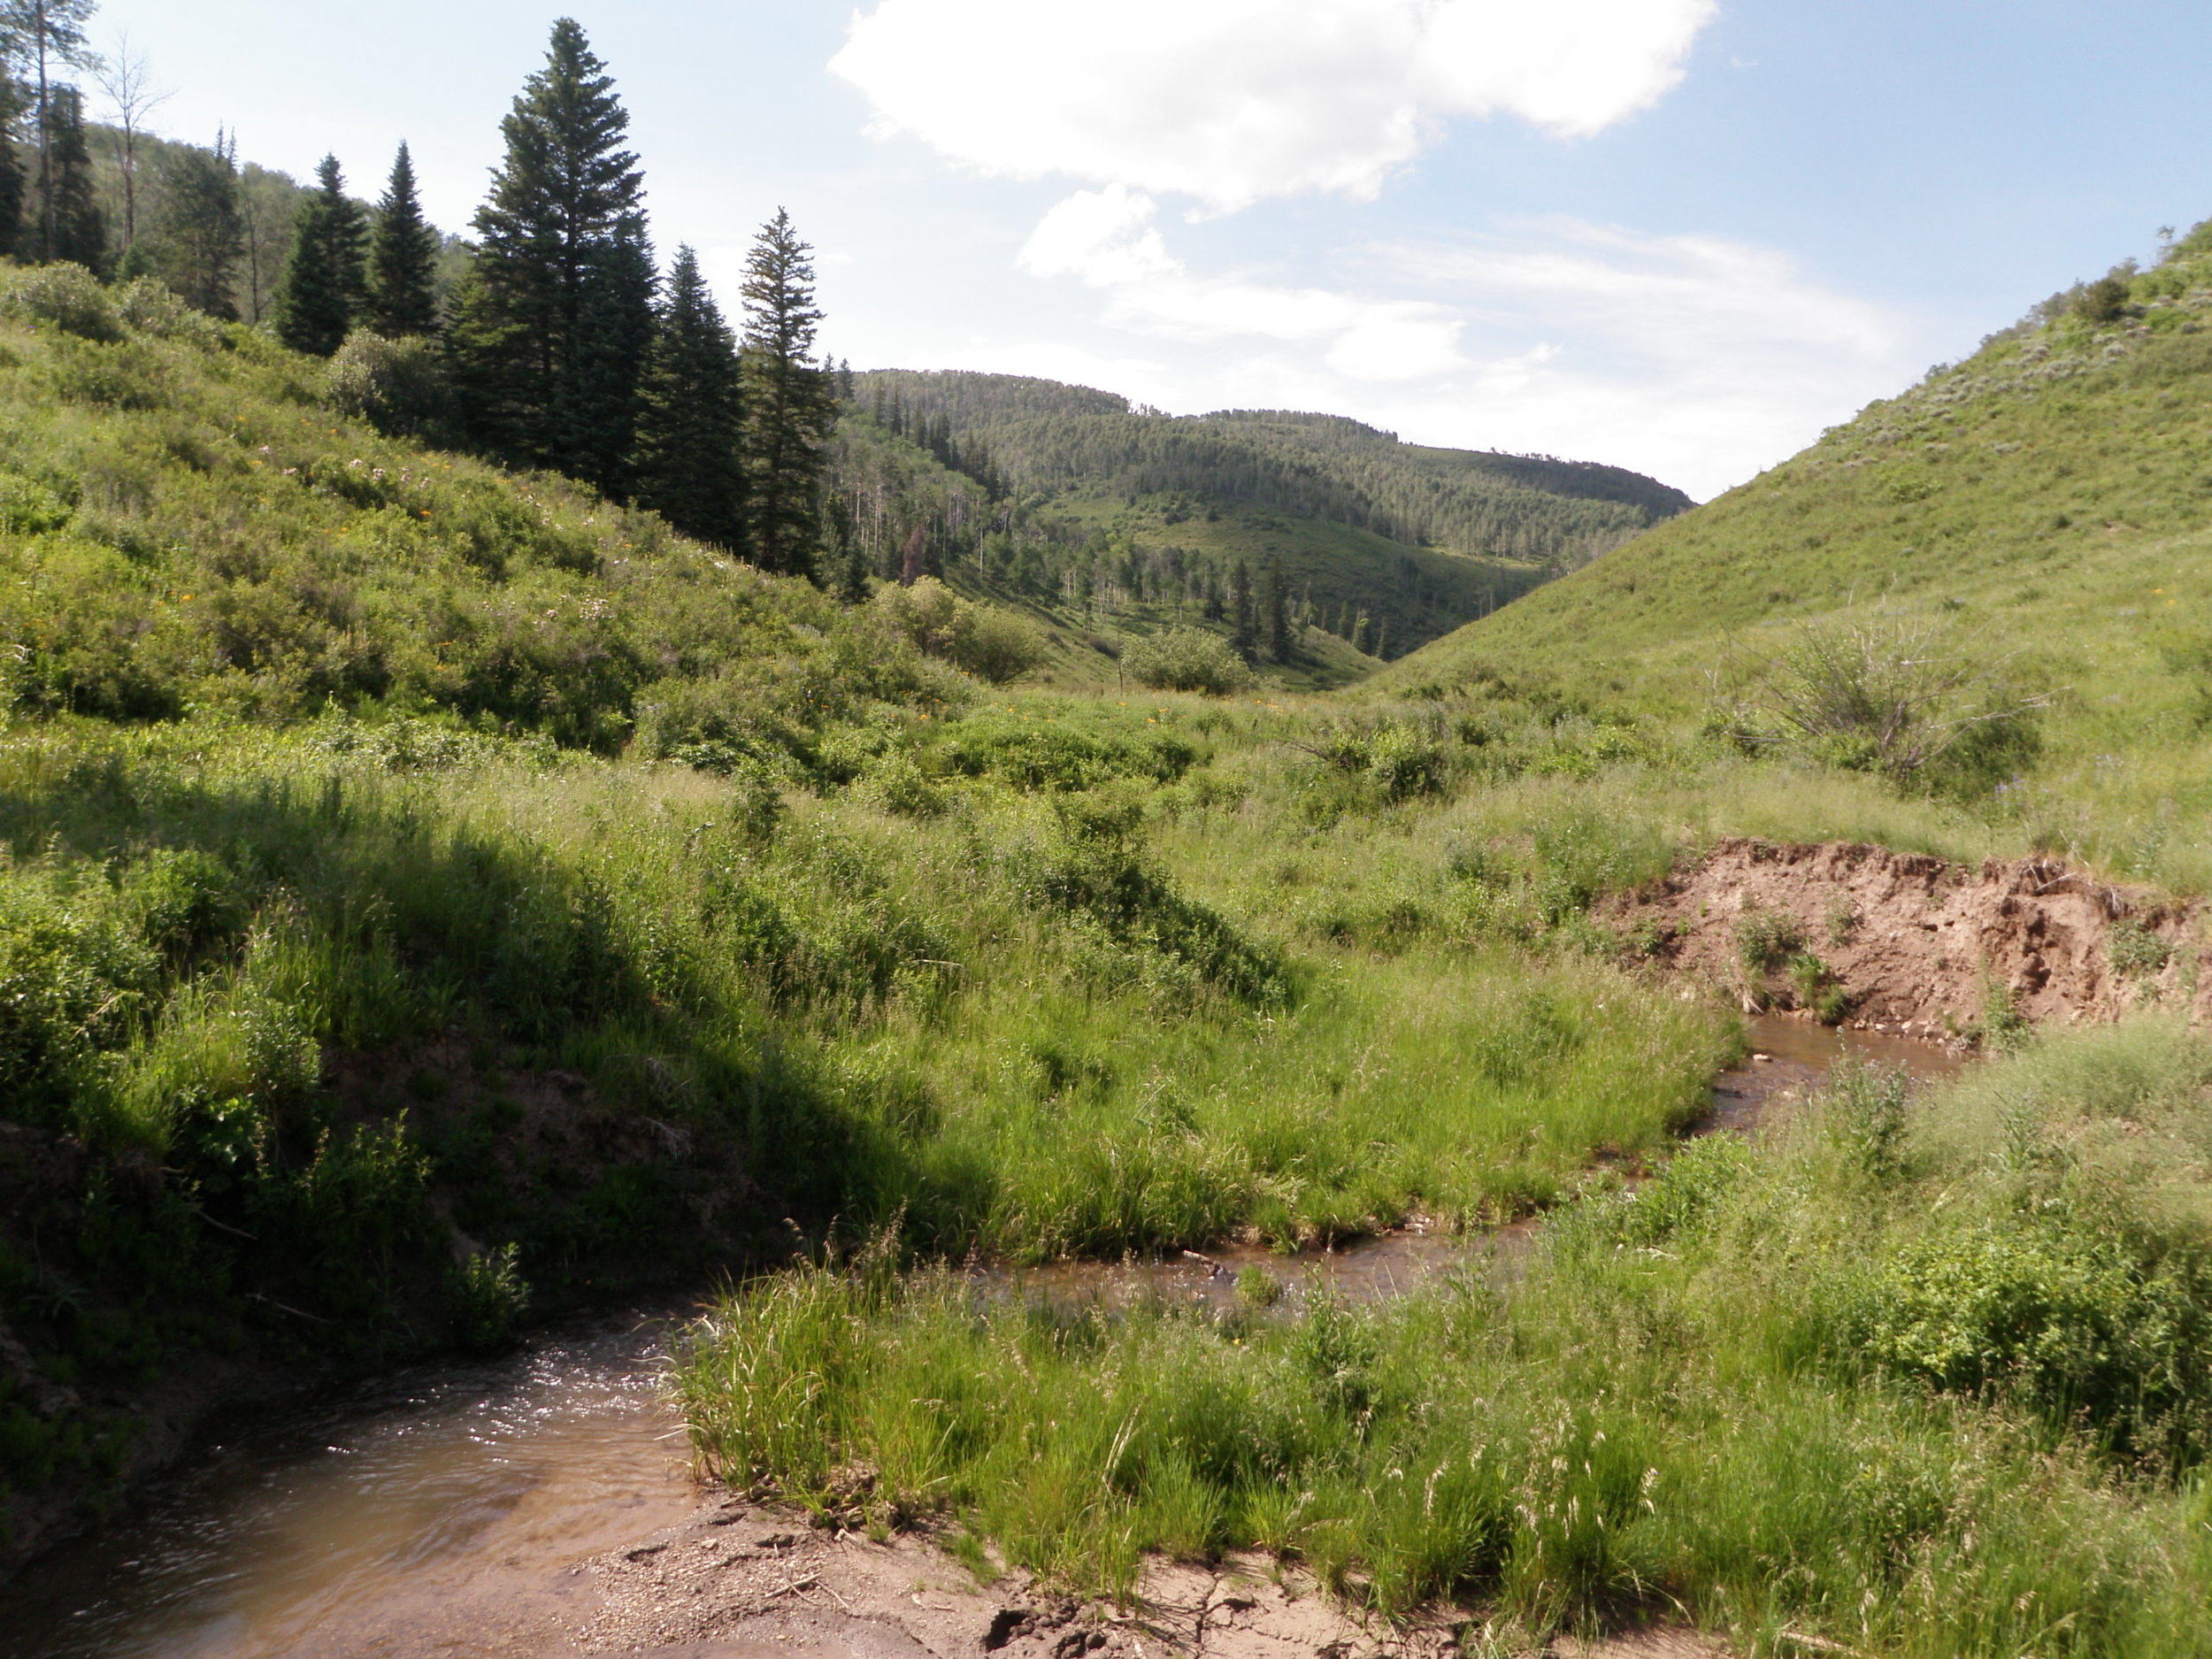 Extensive erosion and subsequent silt impacts cutthroat trout spawning at Butler Creek